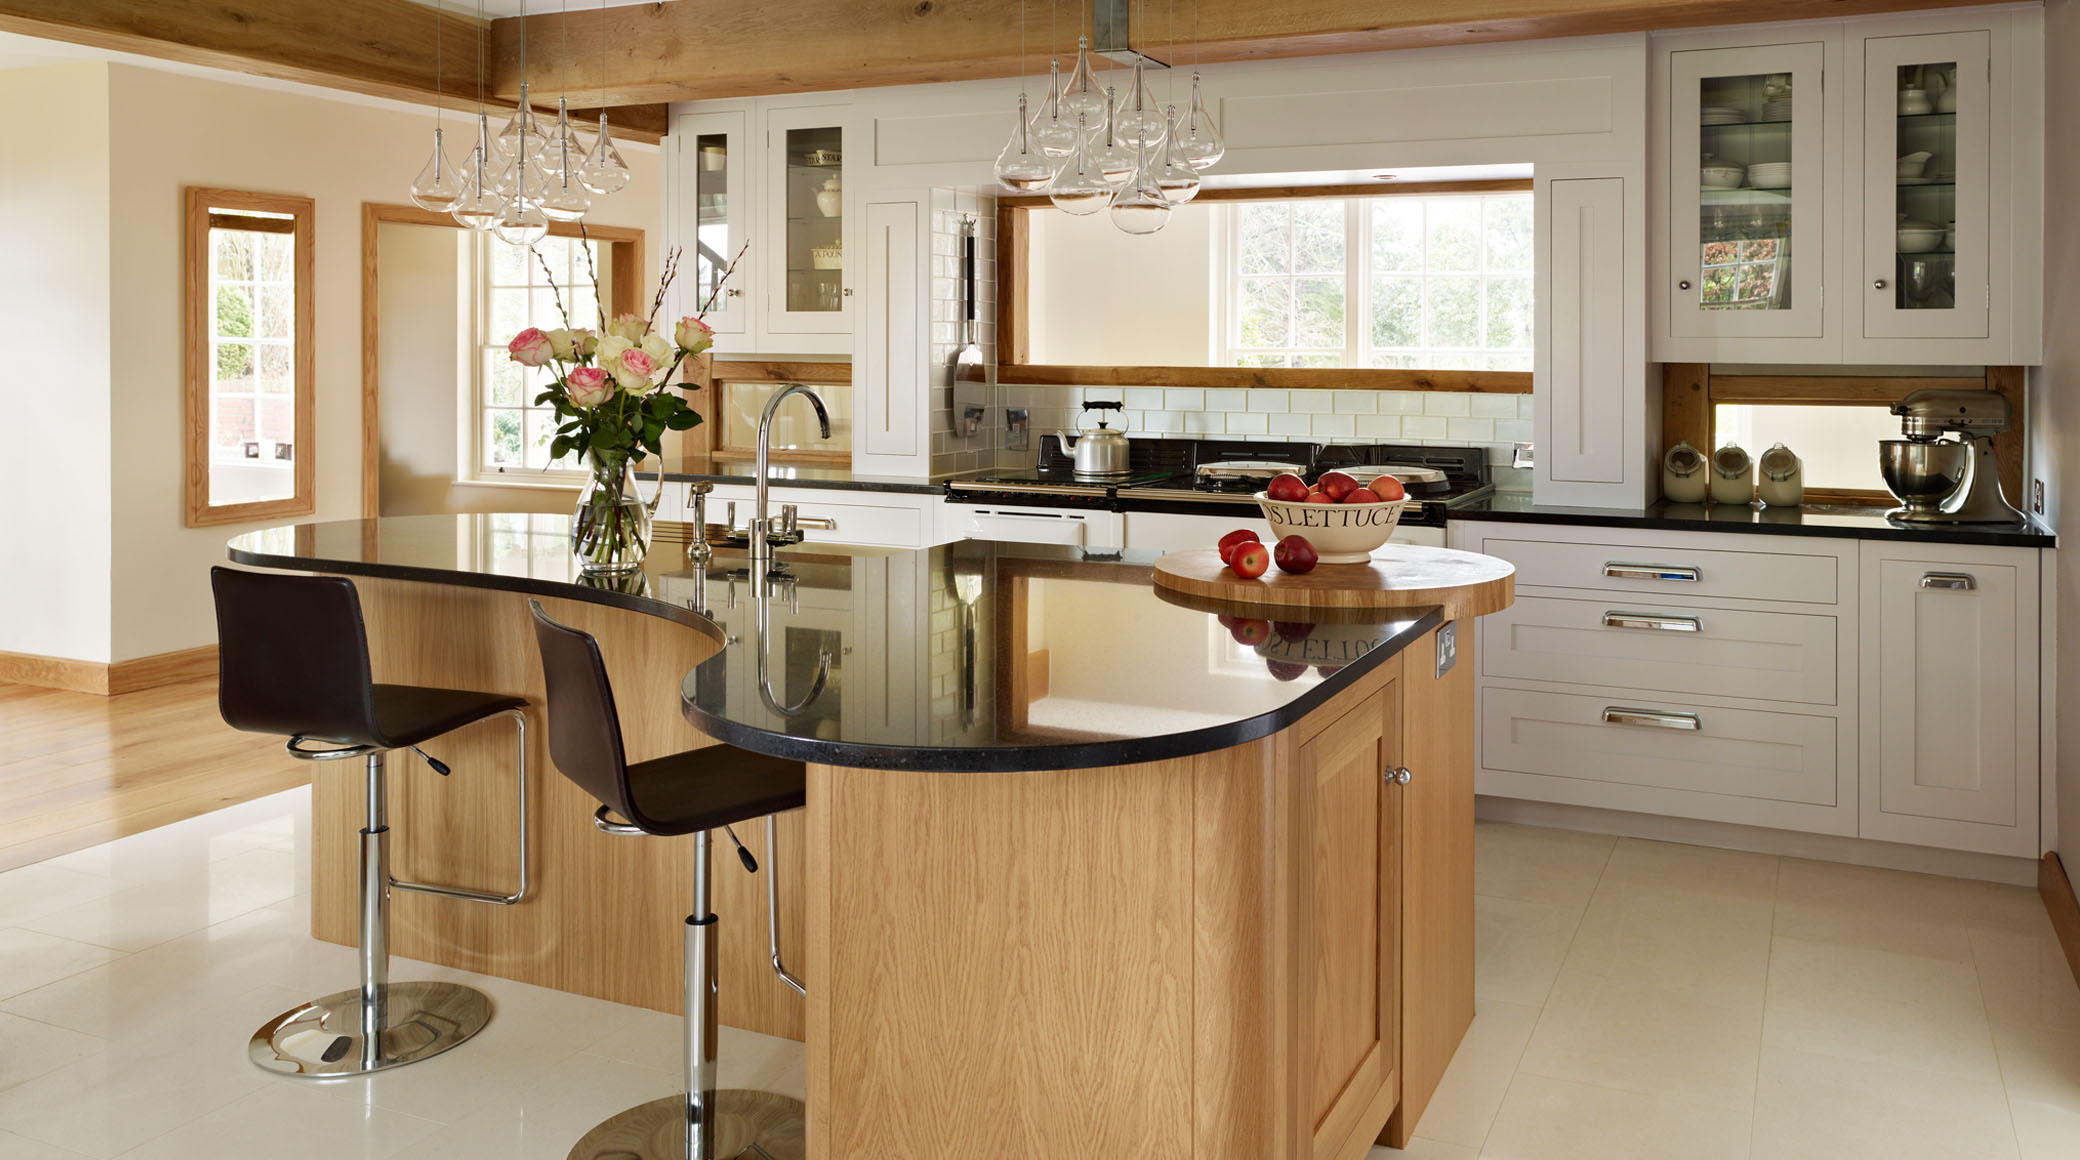 Curved Kitchen Island Made From Wood With Black Glass Surface Sink And  Faucet Two Barstools Two